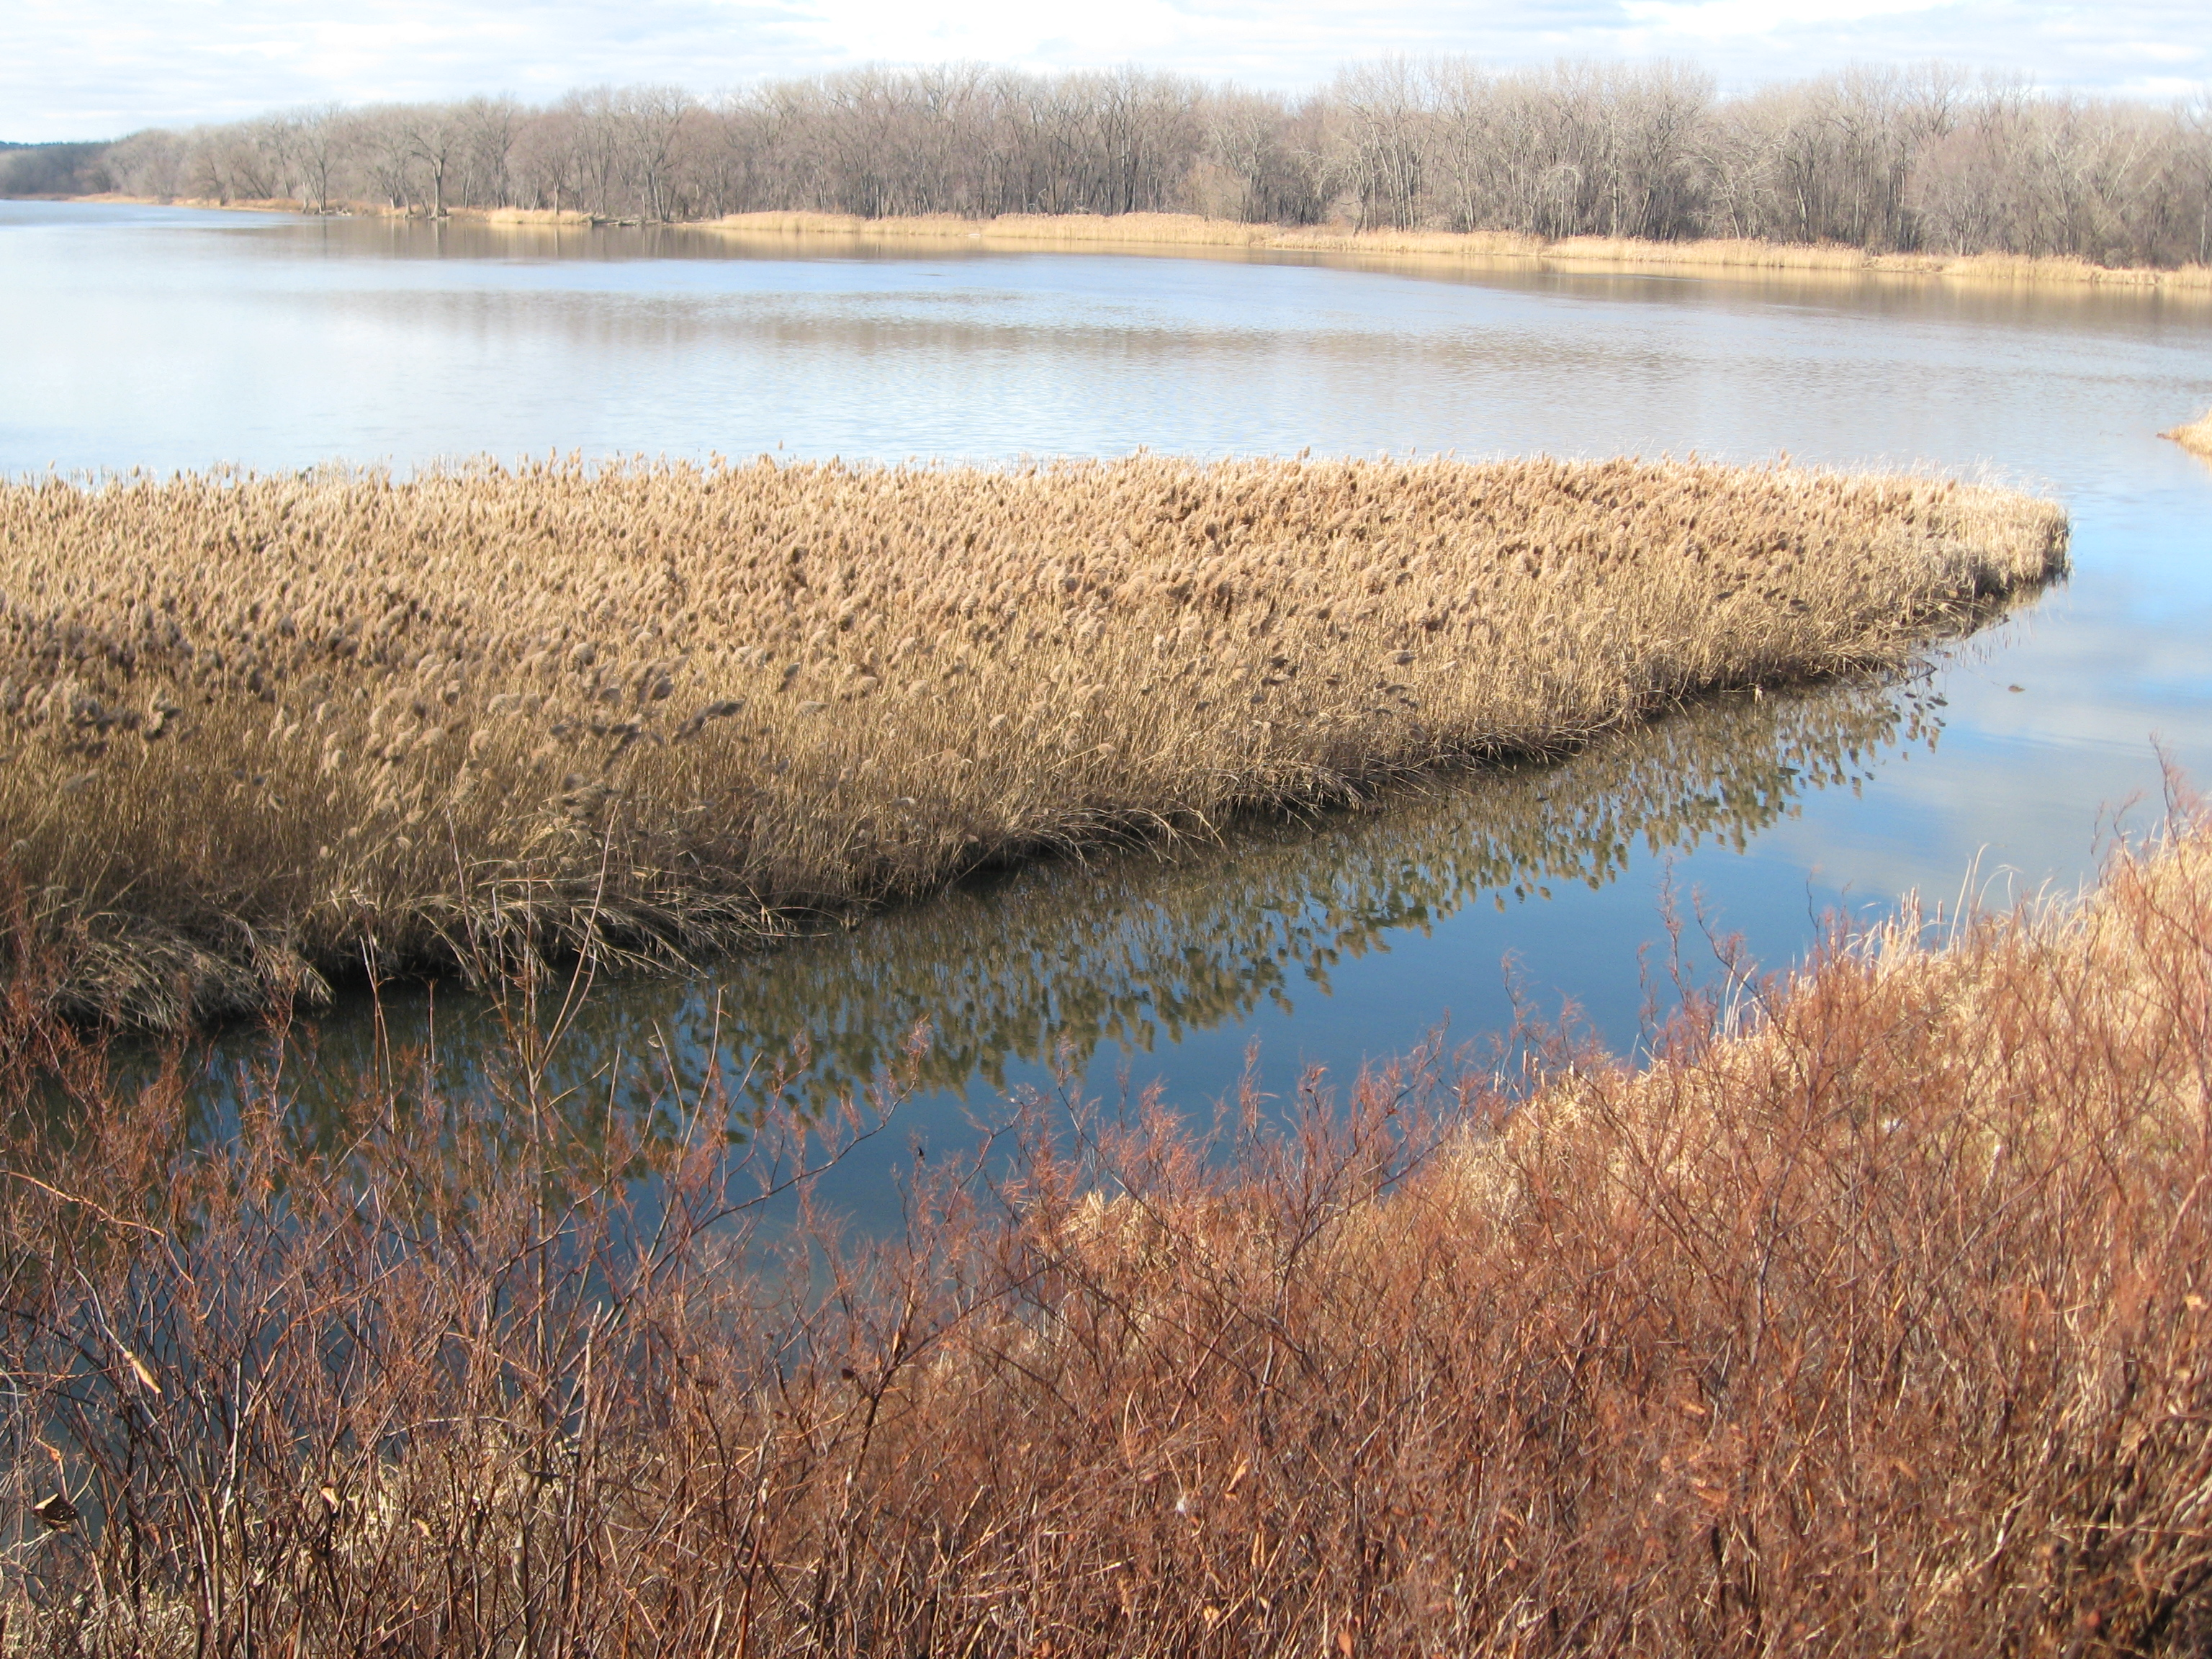 Mohawk River: beauty in browns and blues.